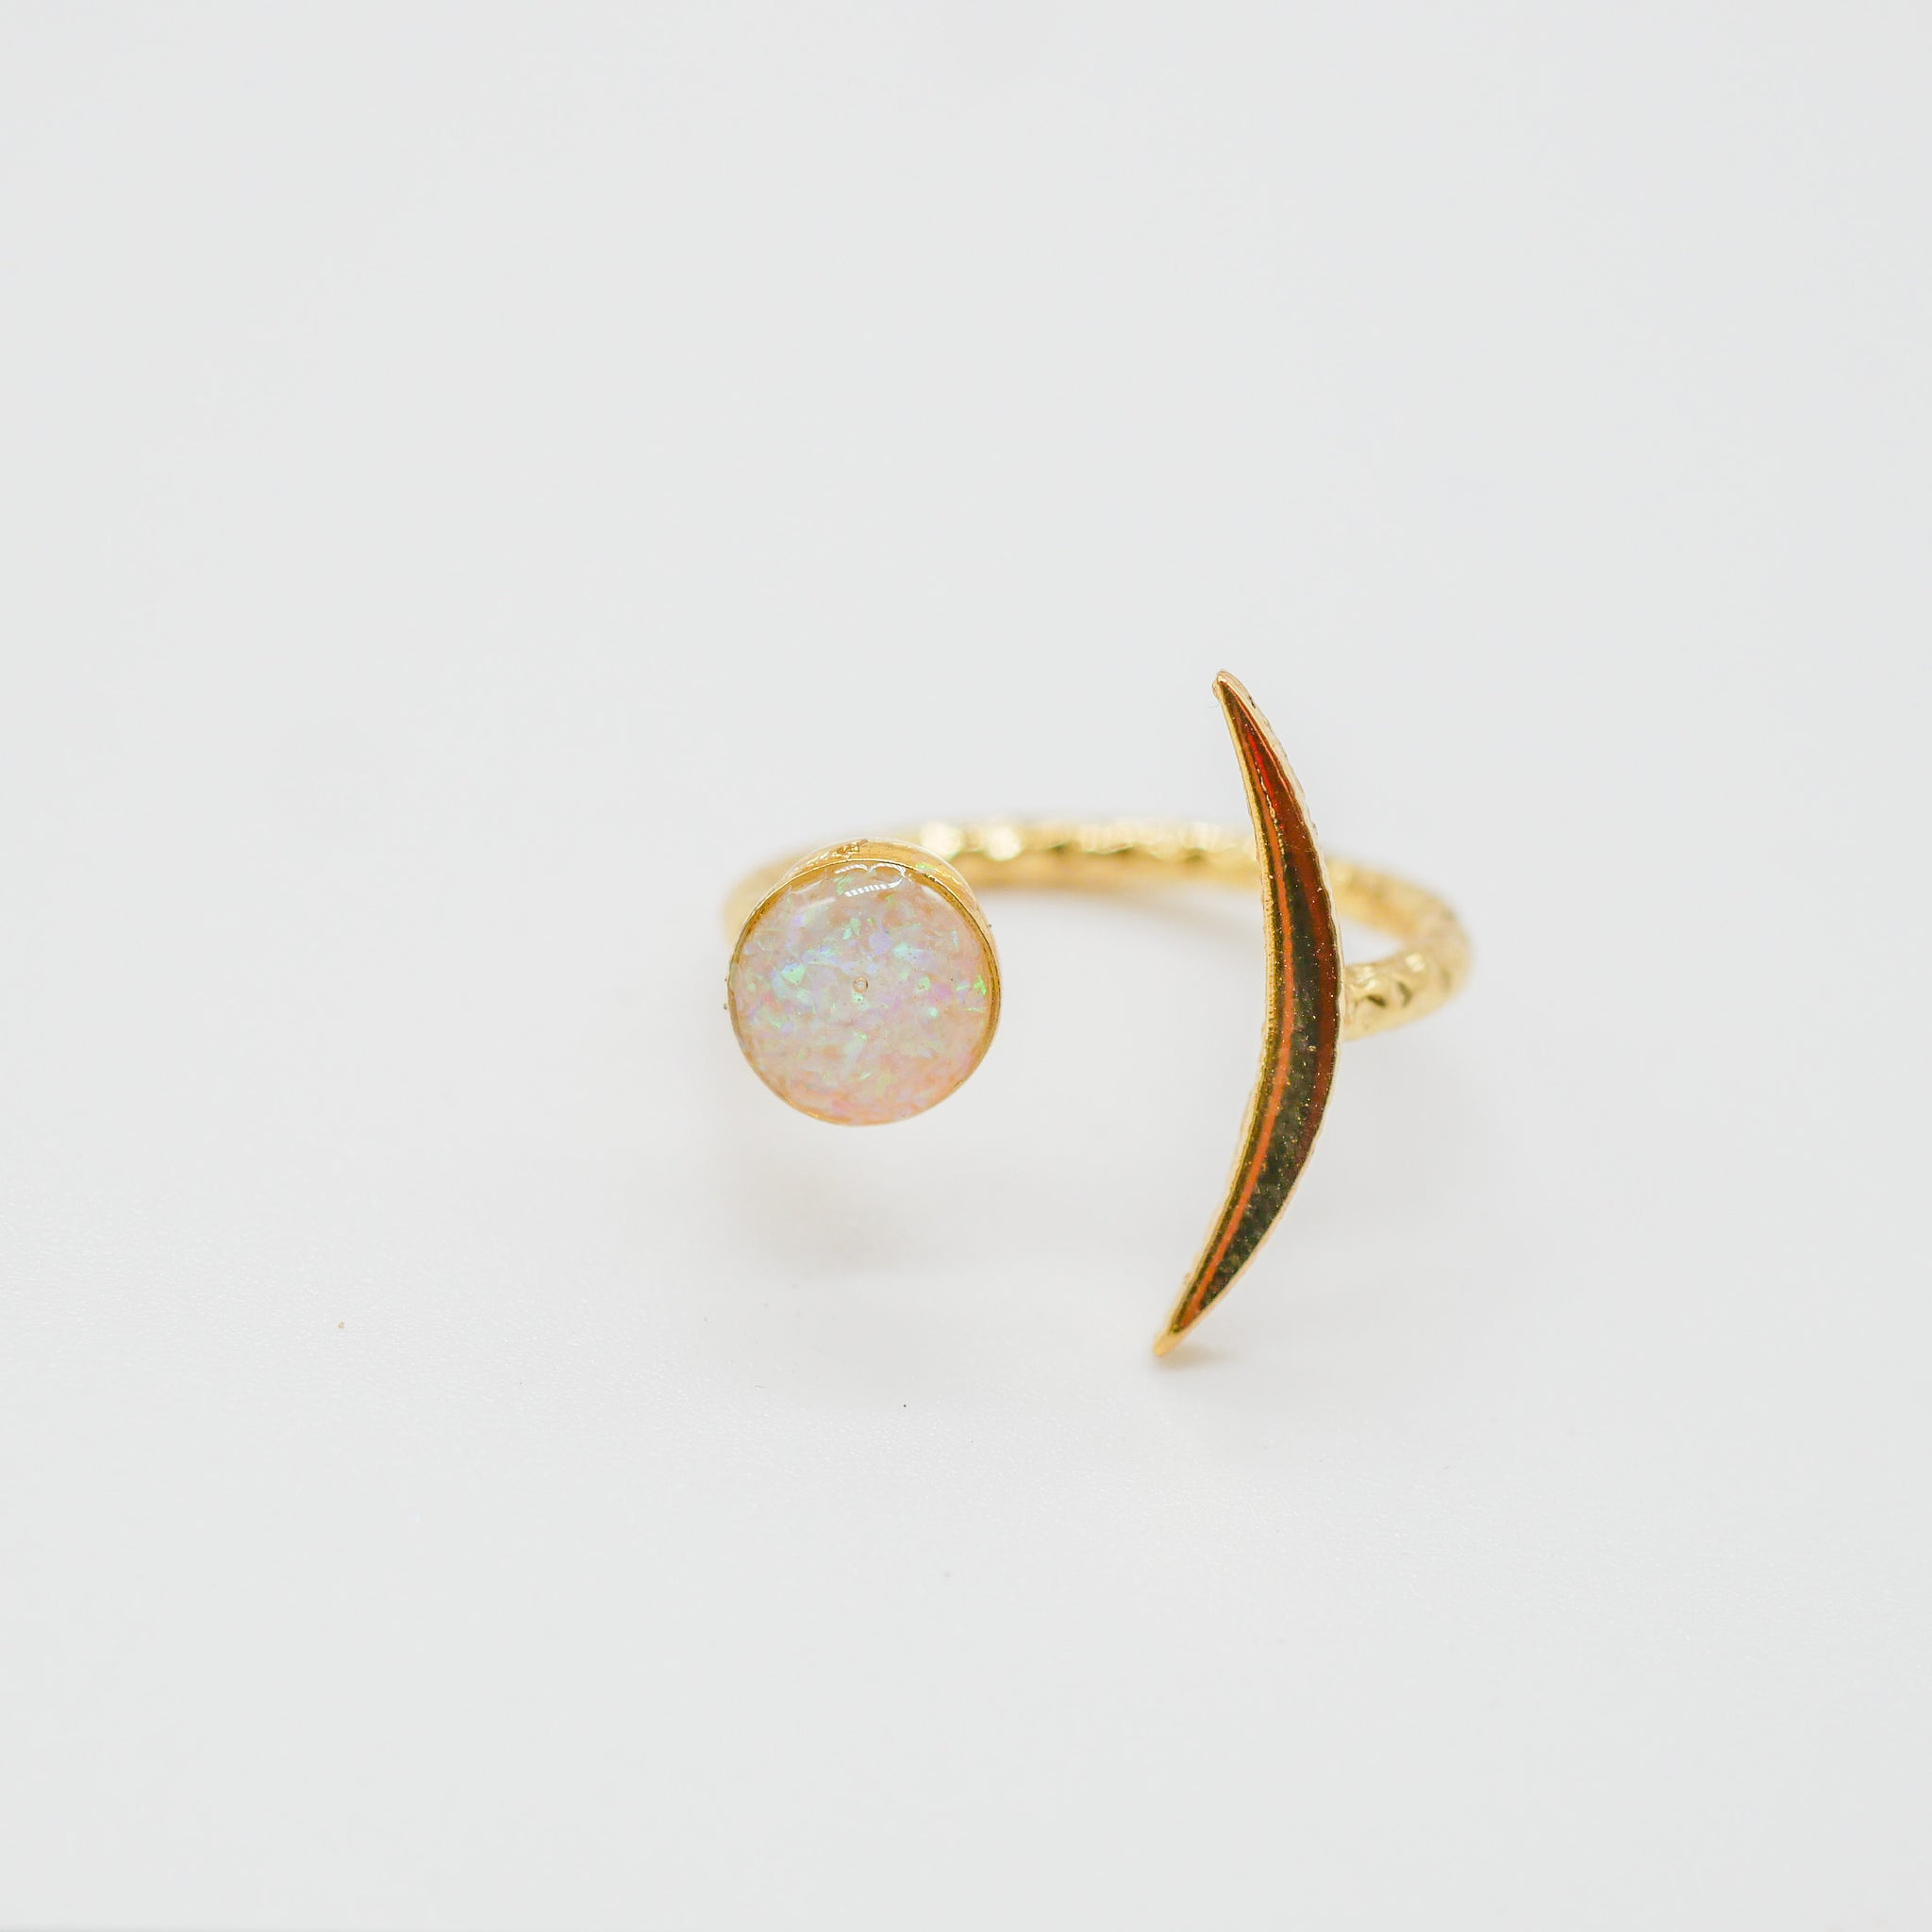 Gold opal crescent  moon ring